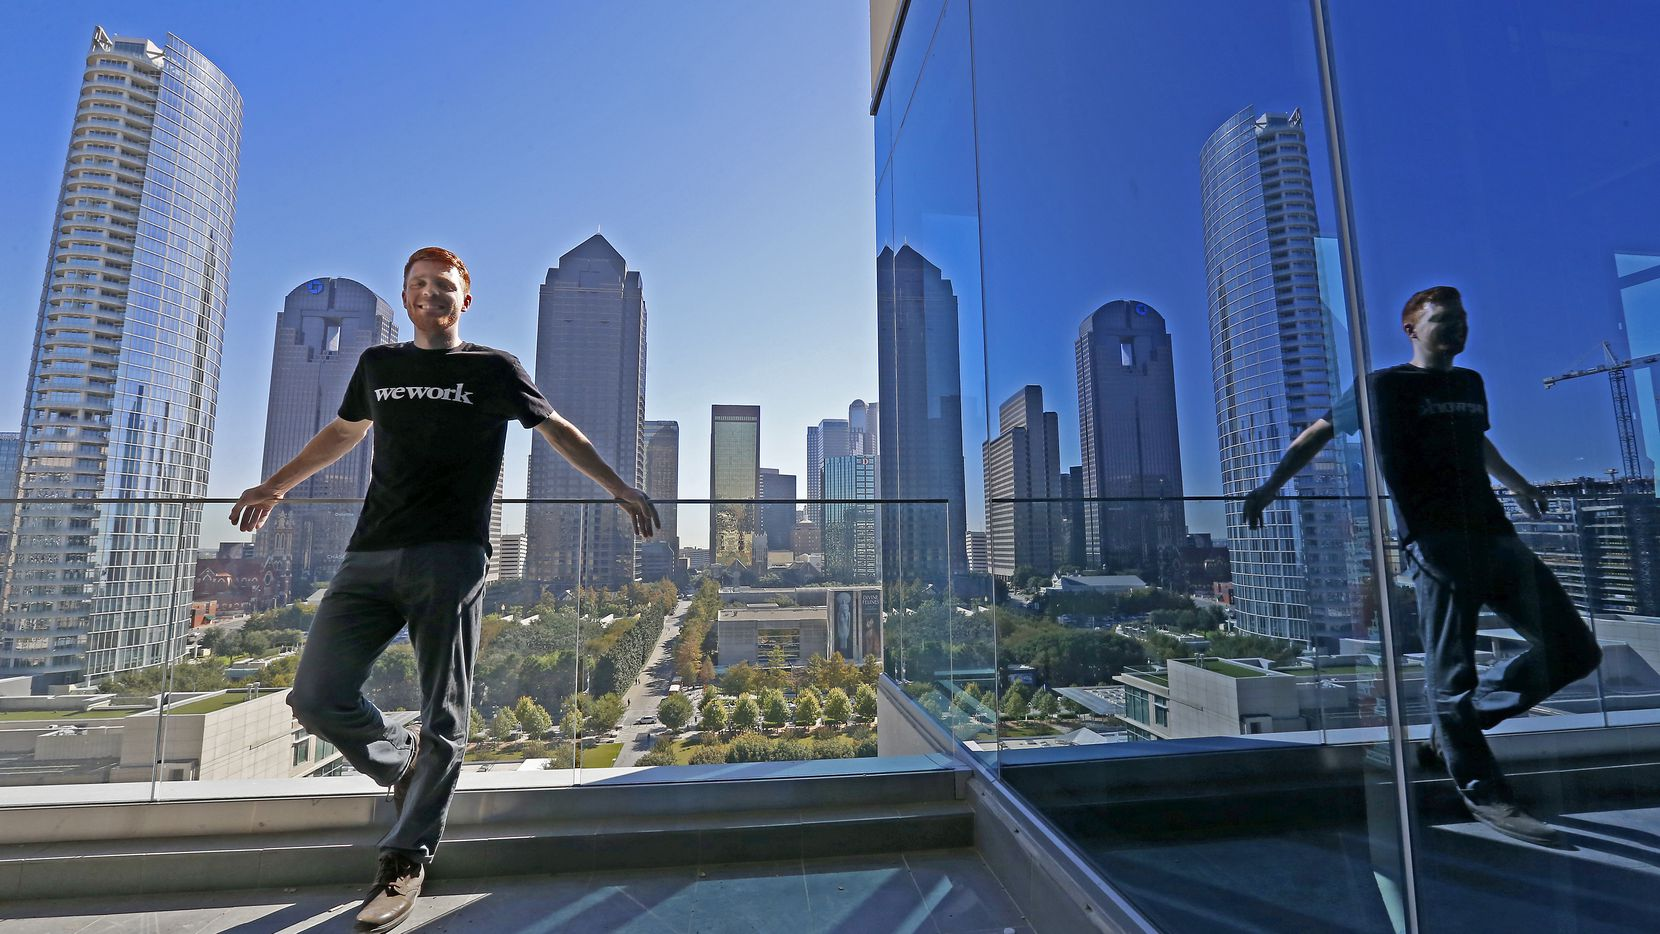 Adam Wacenske, general manger of the WeWork's south region, poses for a photograph in a balcony of the WeWork's future office space sharing location on McKinney Avenue during a media tour in Dallas, Wednesday, Nov. 16, 2016. (Jae S. Lee/The Dallas Morning News)